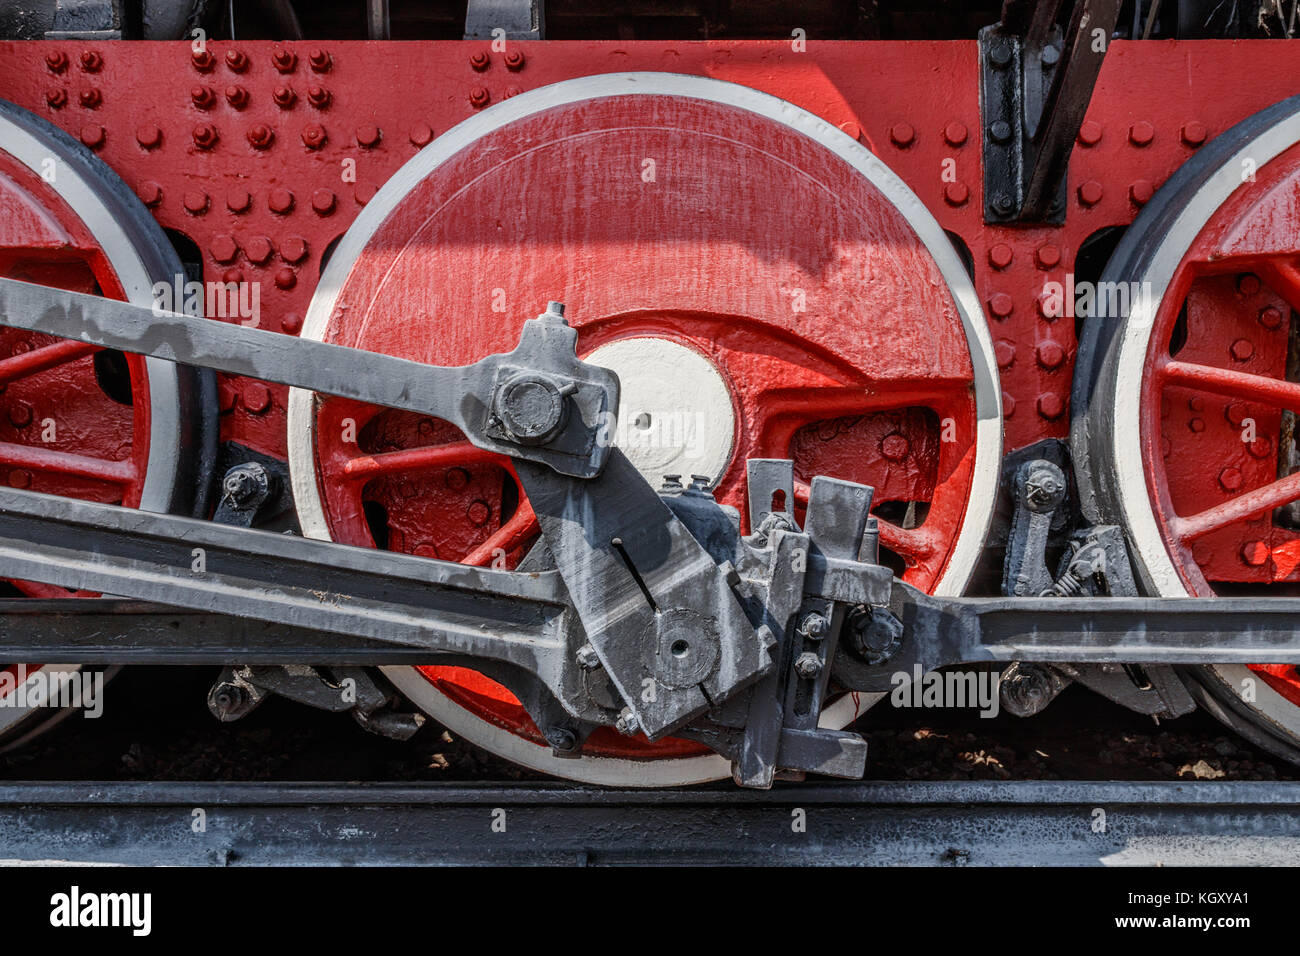 Red frame and wheels of a steam locomotive with cranks, rods and axles. Stock Photo